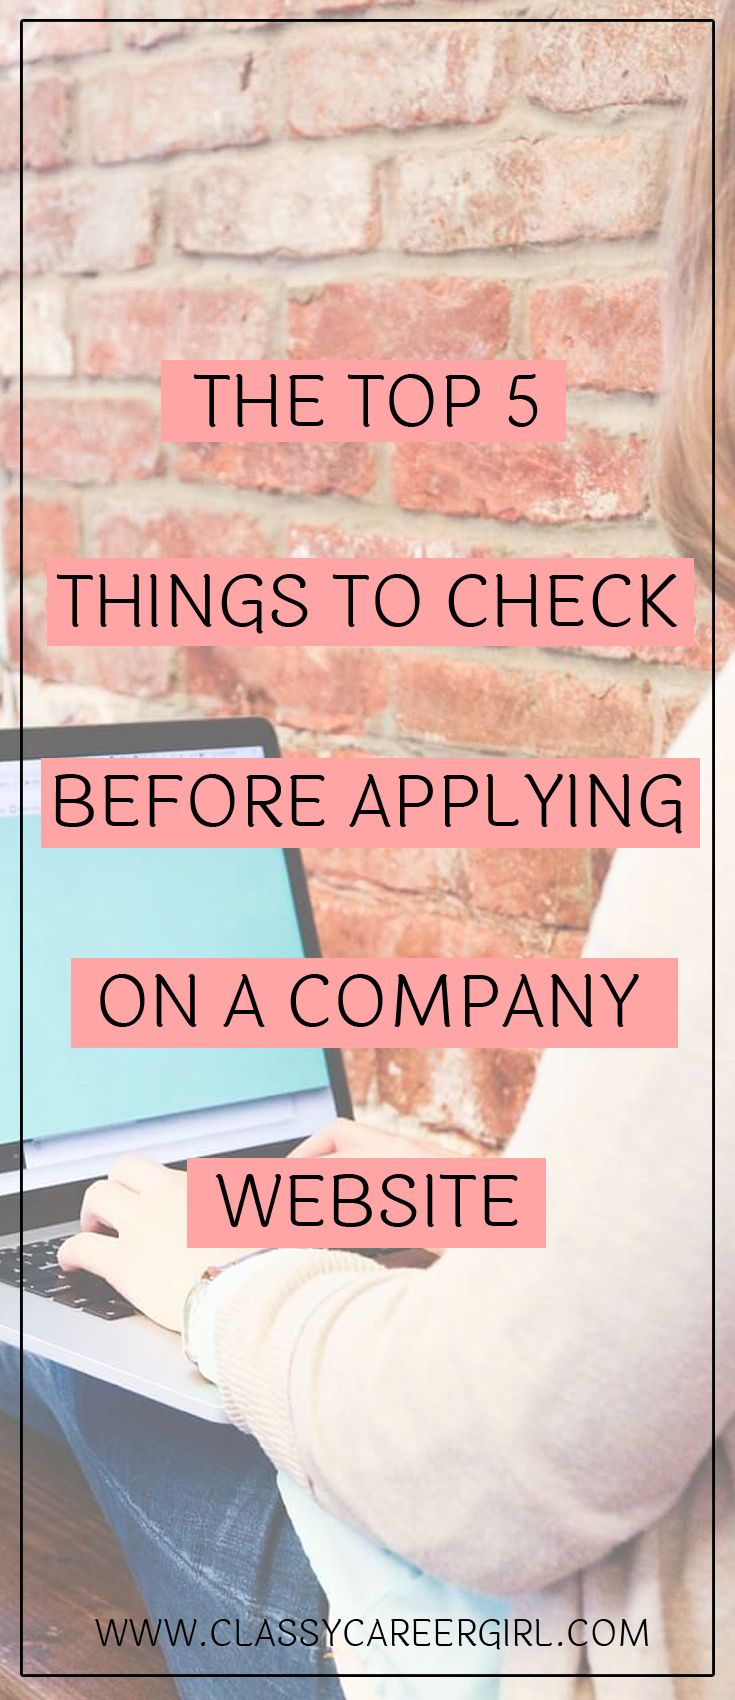 the top 5 things to check before applying on a company website these days even - Resumescom